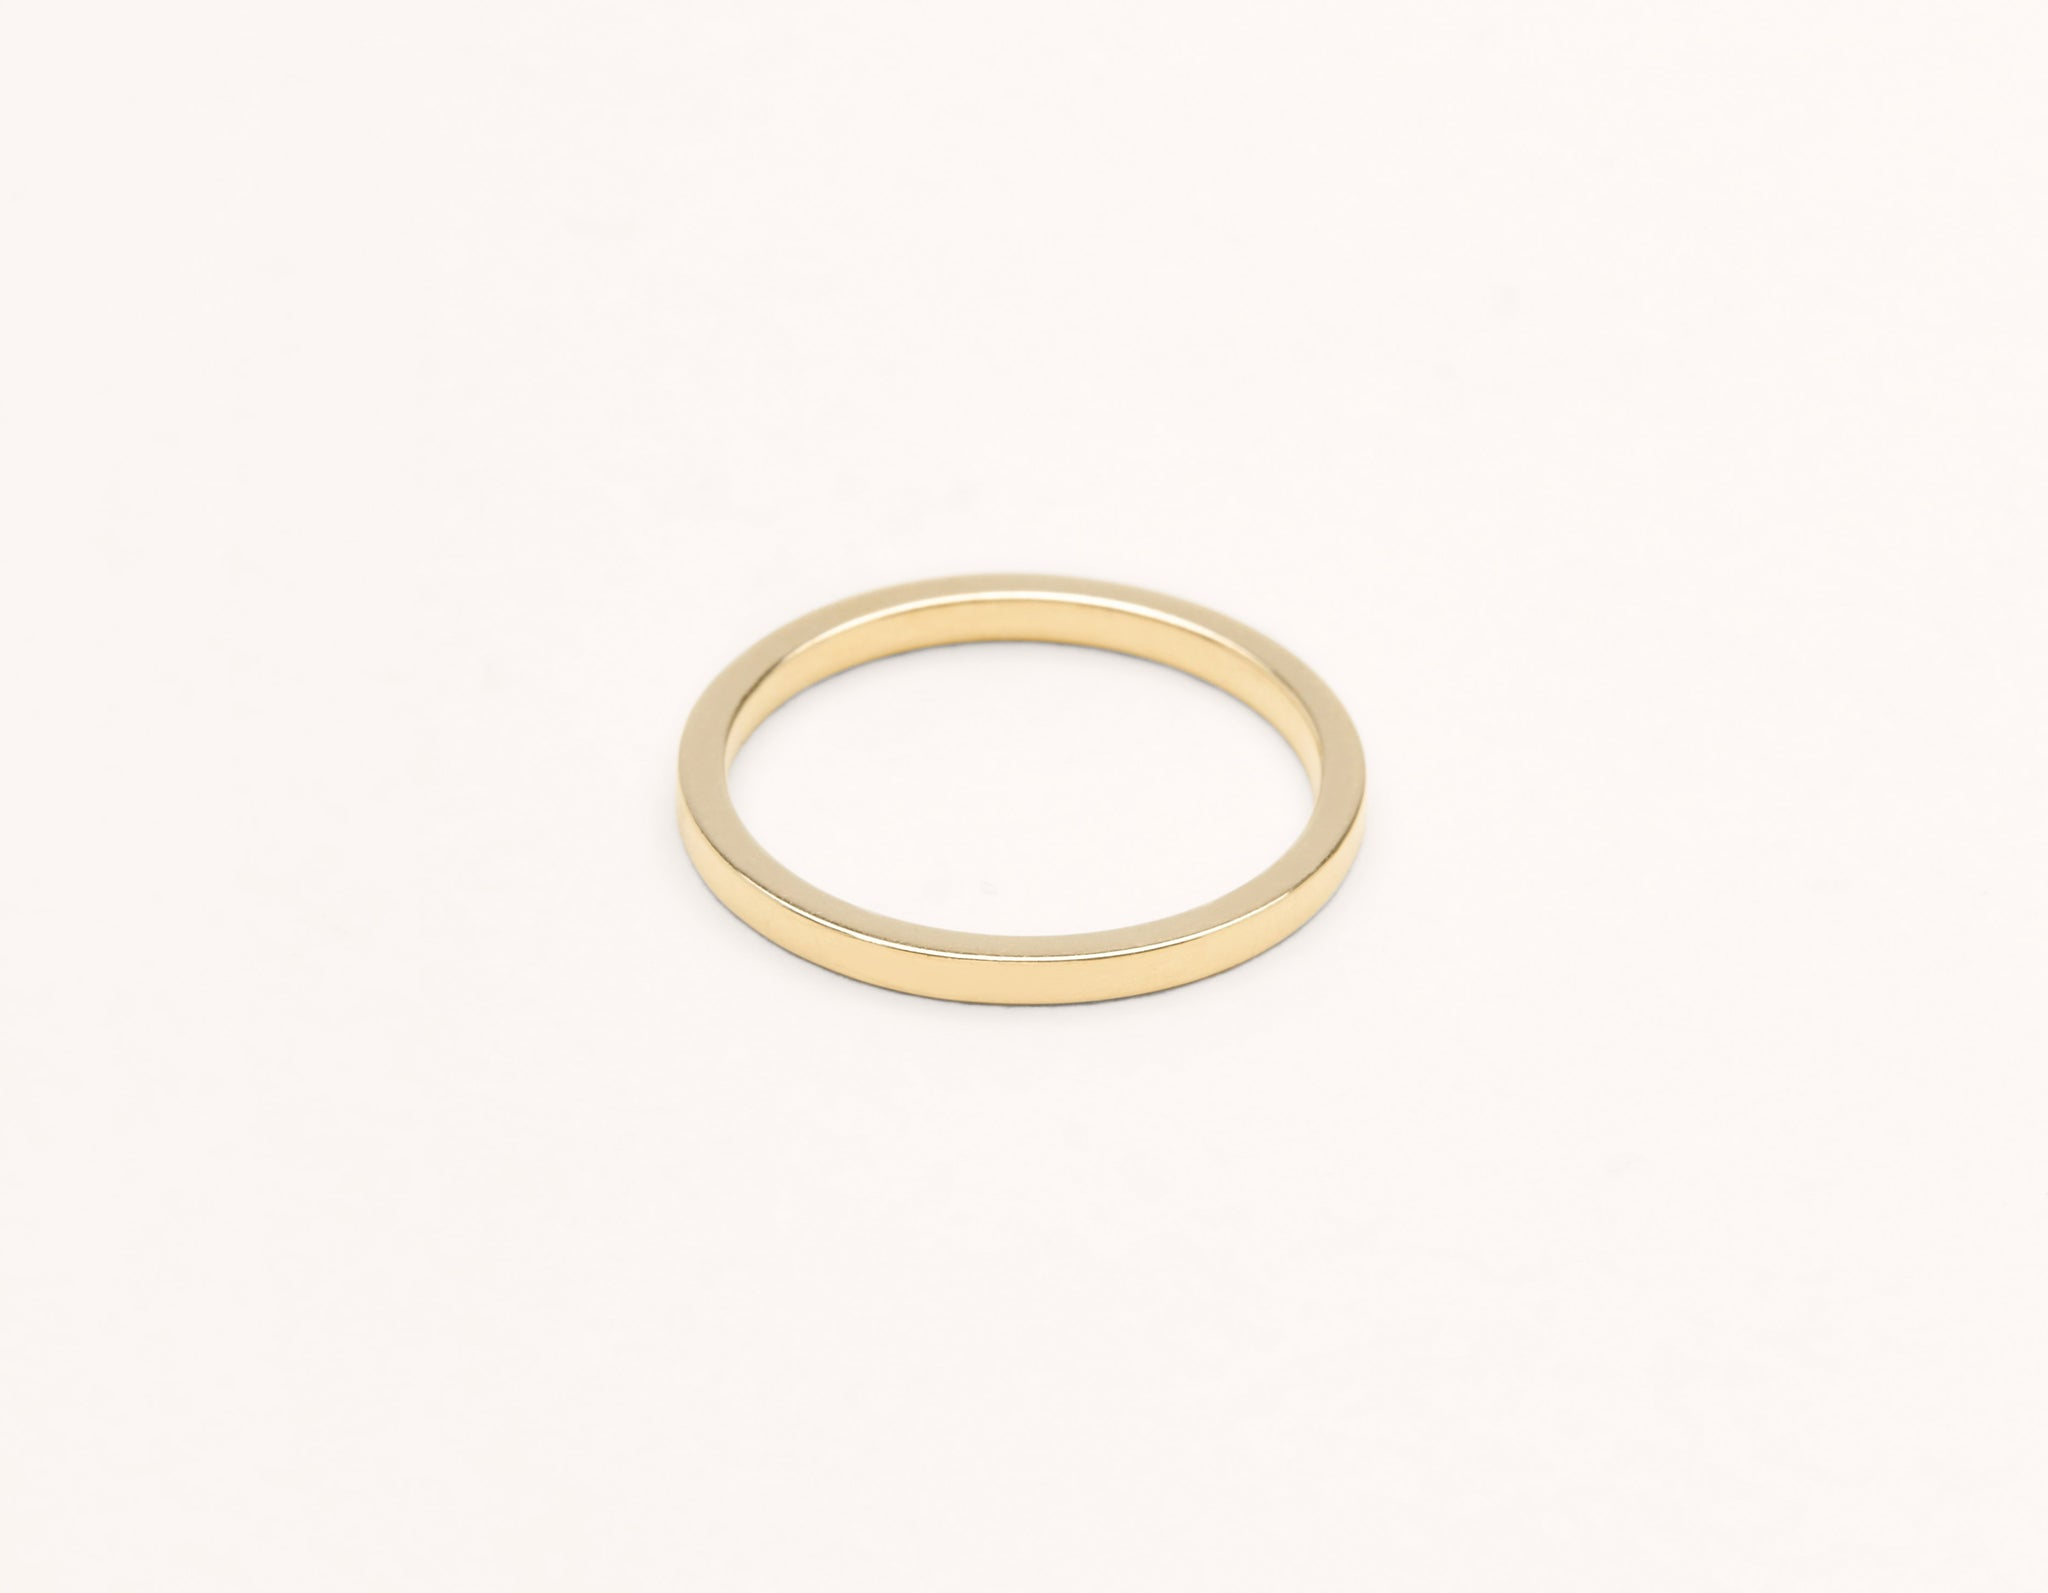 Simple modern 18k solid yellow gold 1.5 mm Flat men's women's Wedding Band Vrai & Oro